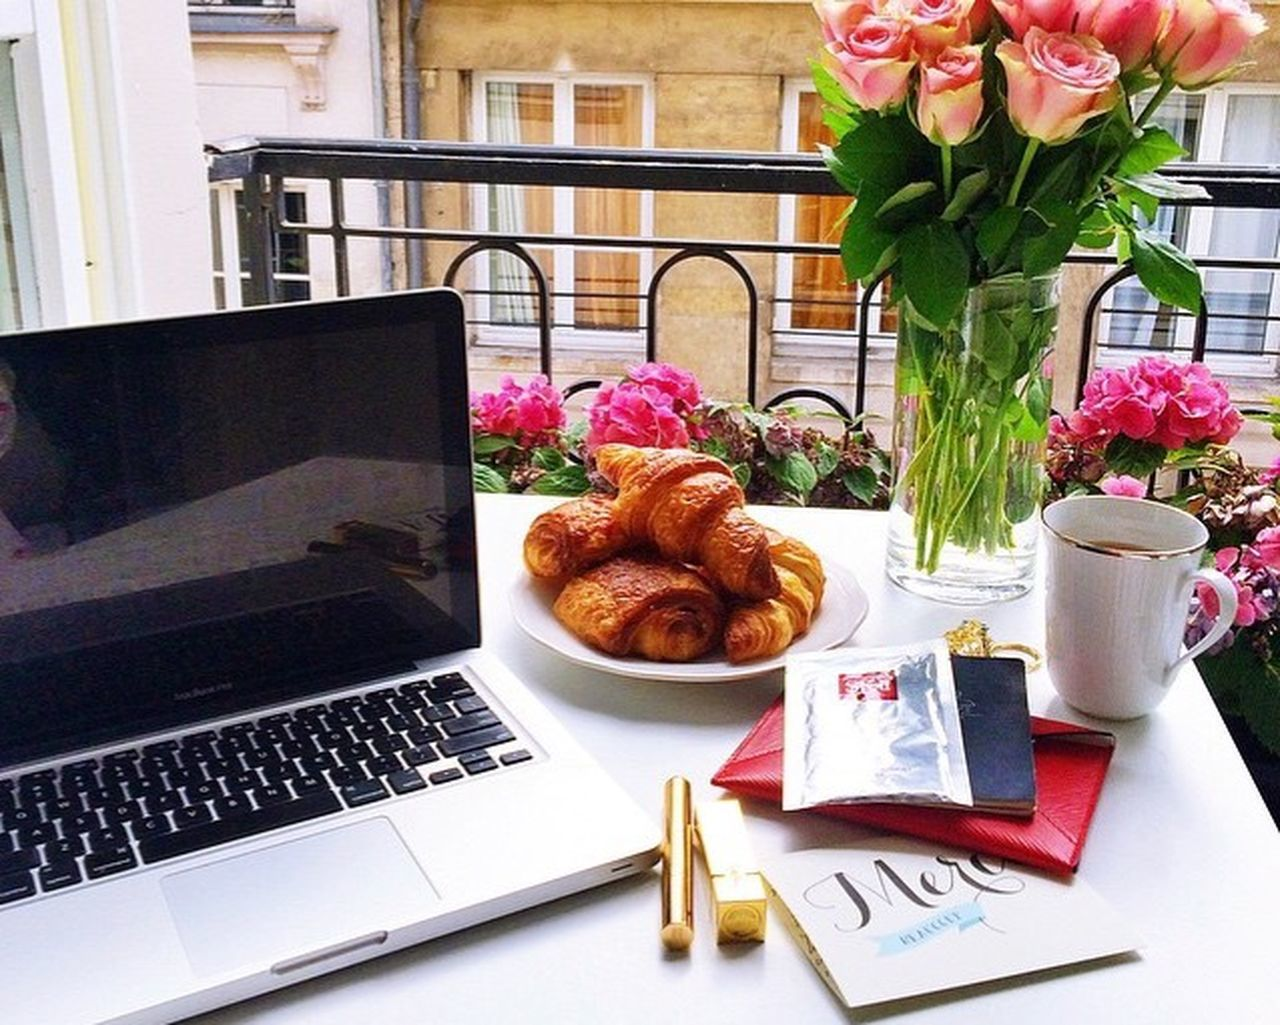 indoors, table, wireless technology, laptop, food and drink, home interior, croissant, flower, communication, technology, day, no people, food, freshness, close-up